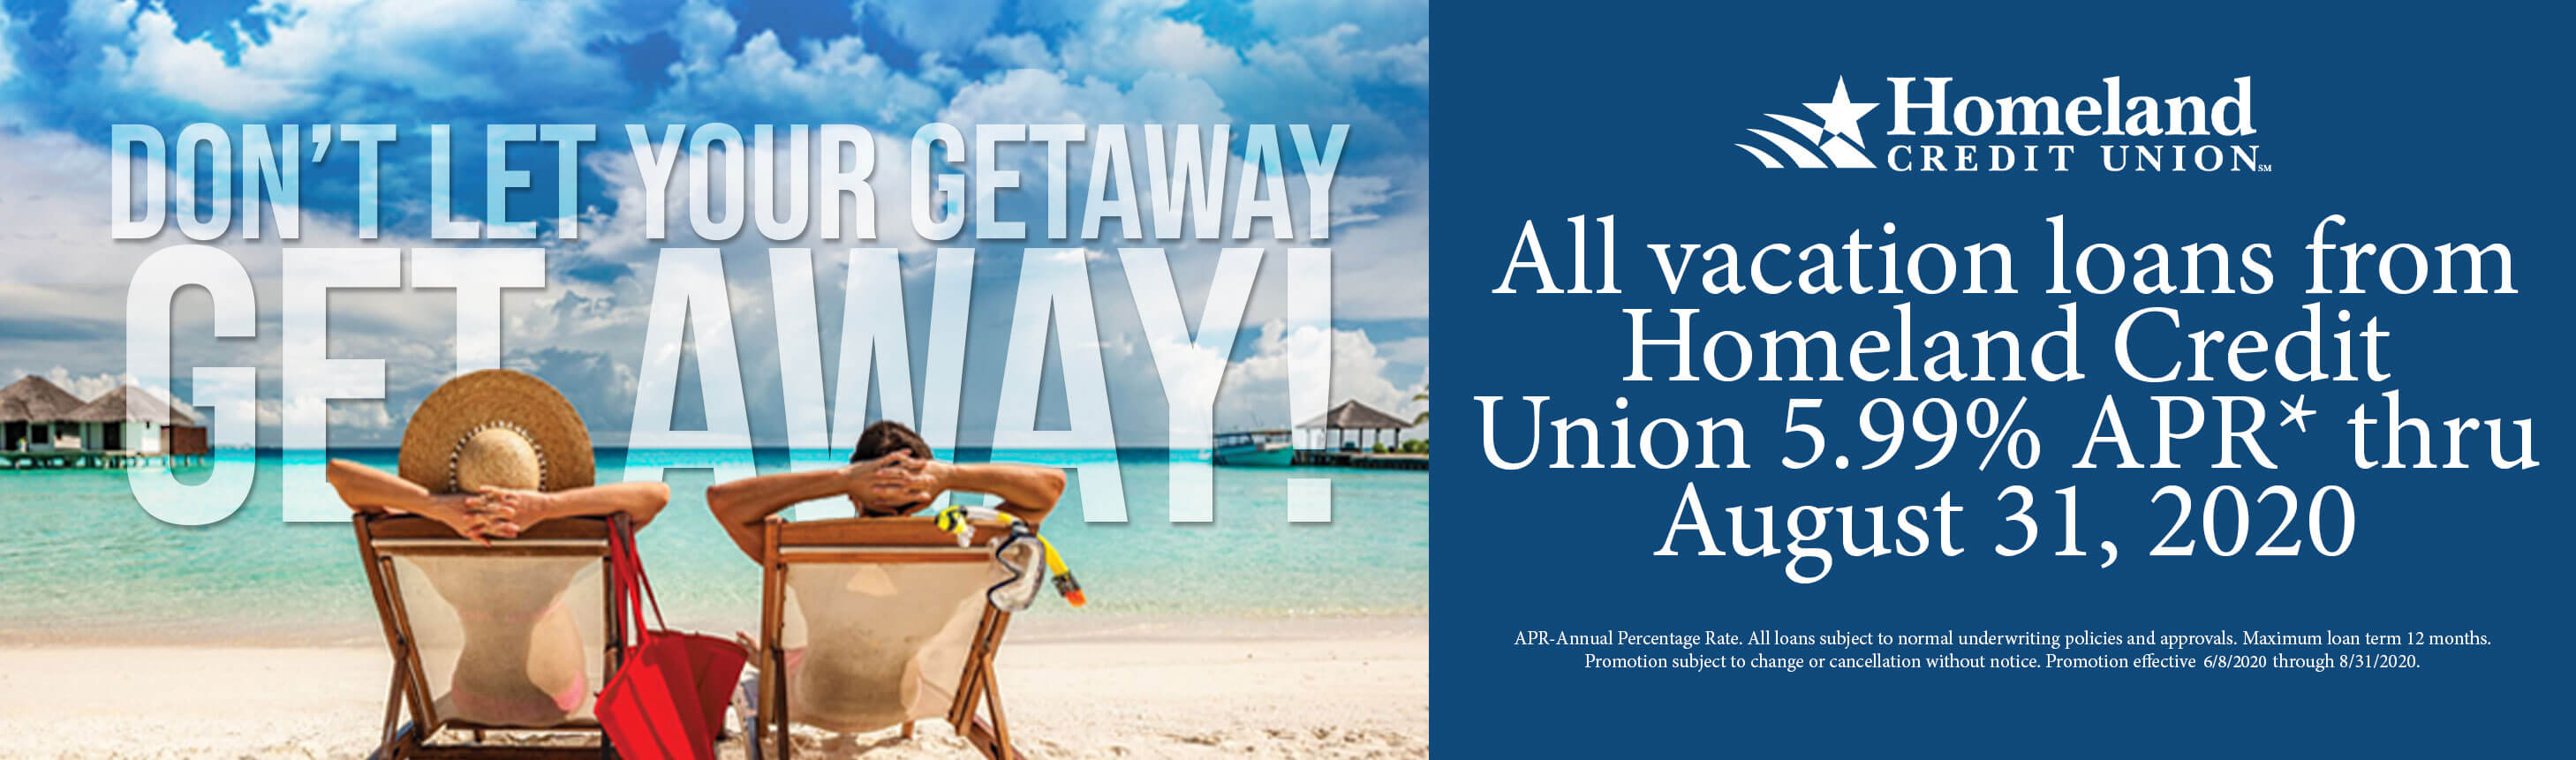 Don't let your getaway get away! APR-Annual Percentage Rate. All loans subject to normal underwriting policies and approvals. Maximum loan term 12 months. Promotion subject to change or cancellation without notice. Promotion effective 6/8/2020 through 8/31/2020